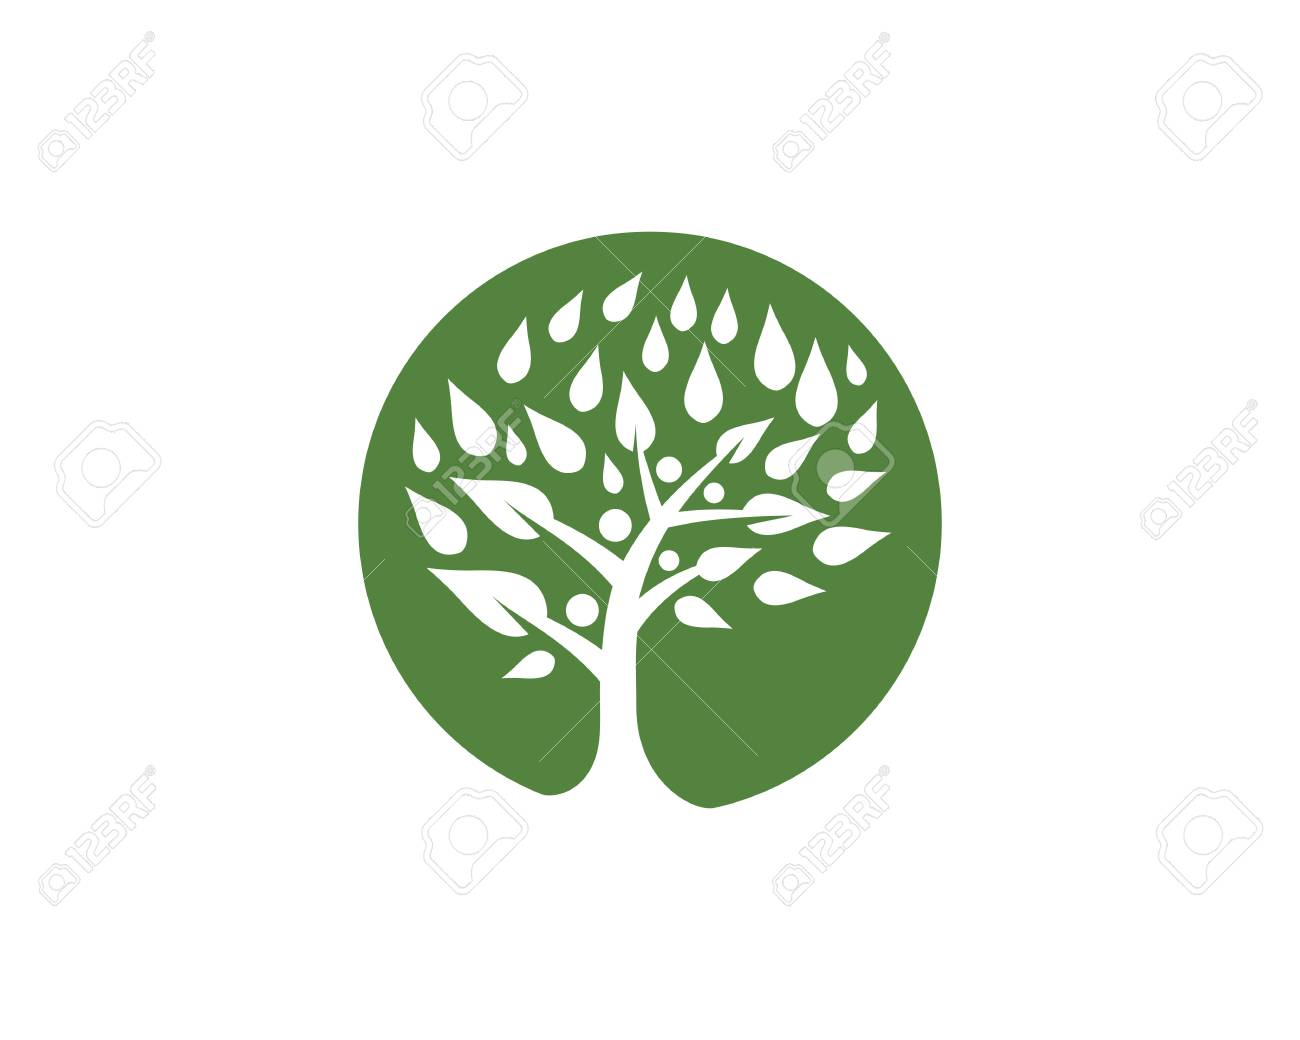 Family Tree Symbol Icon Design Template Royalty Free Cliparts